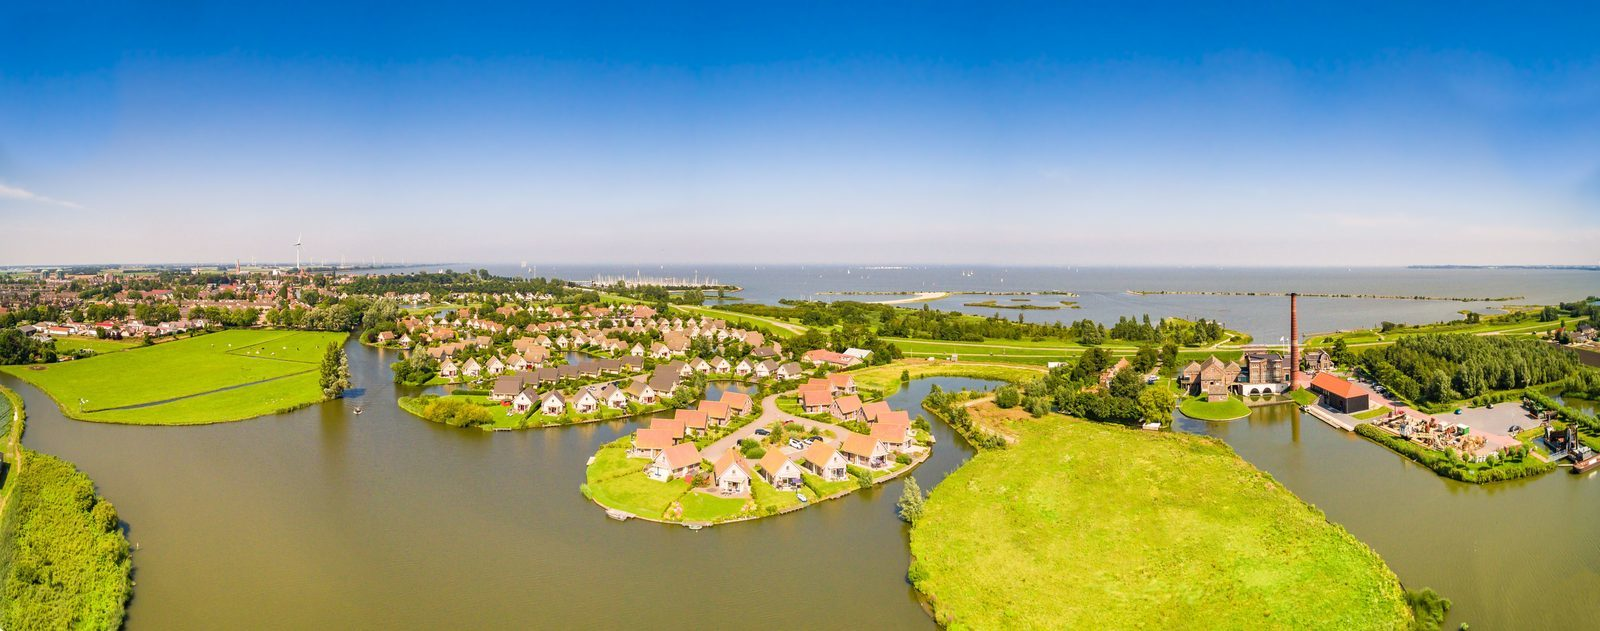 Luxurious bungalows with private jetty near the IJsselmeer